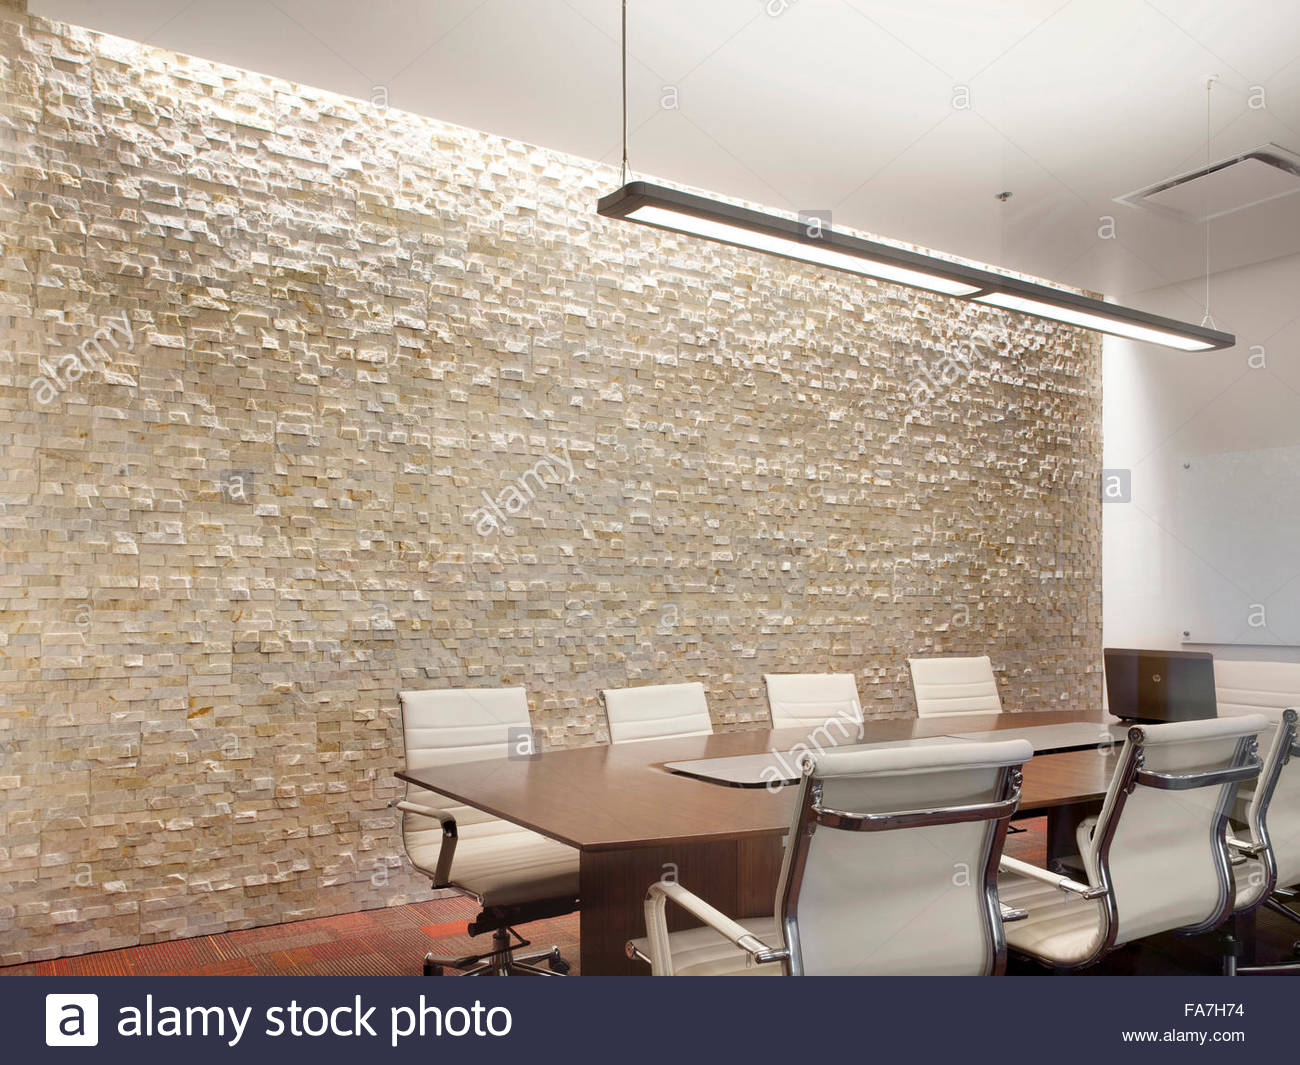 Office conference room with creative lighting designed by Pinnacle